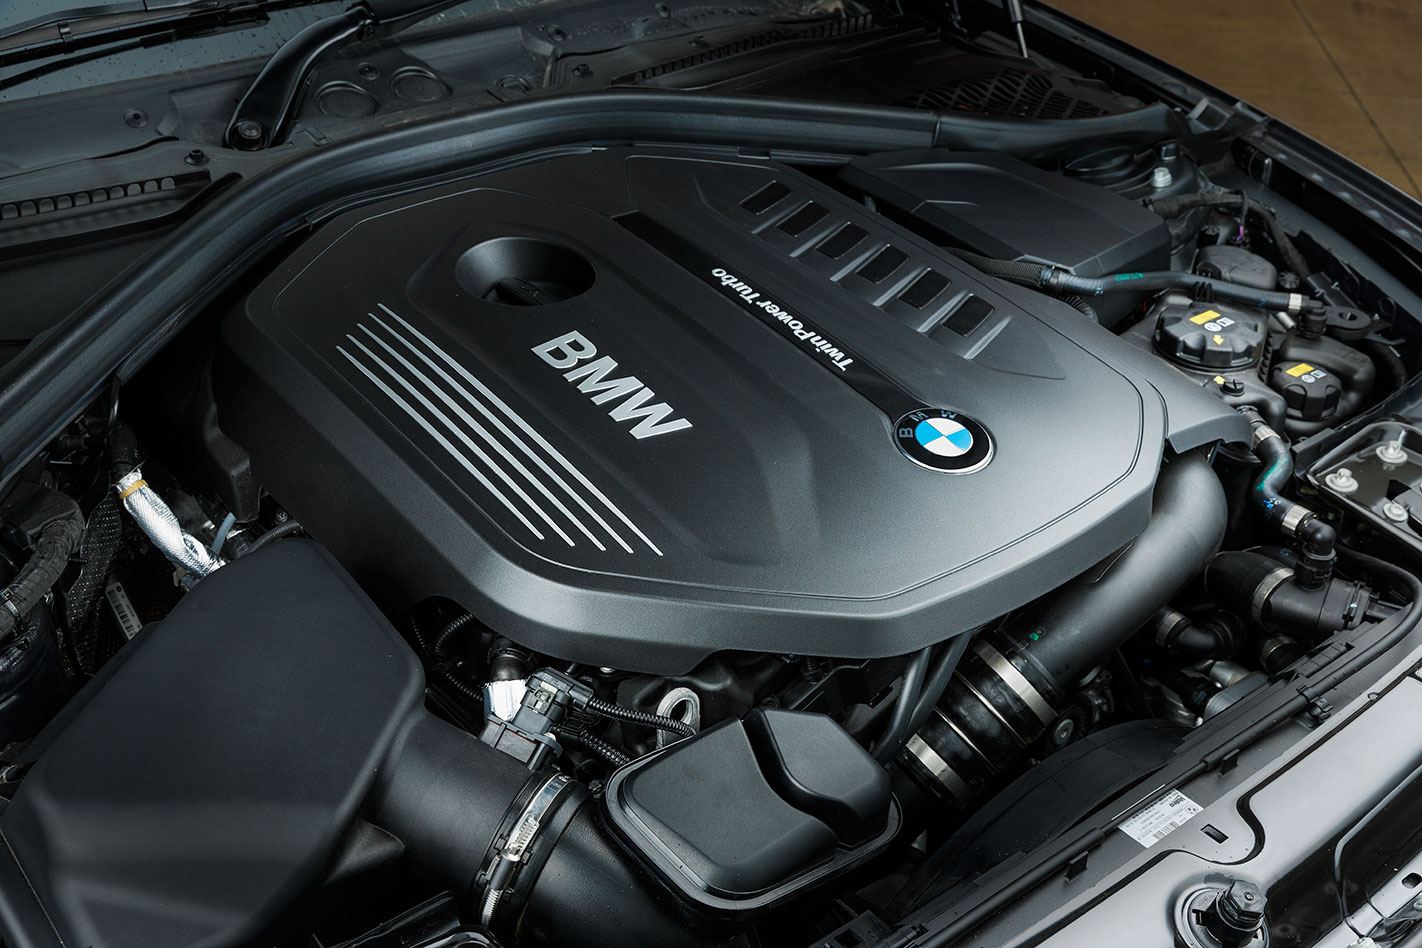 Bmw b58 engine picked as wards 10 best engines of 2017 for South motors bmw mini